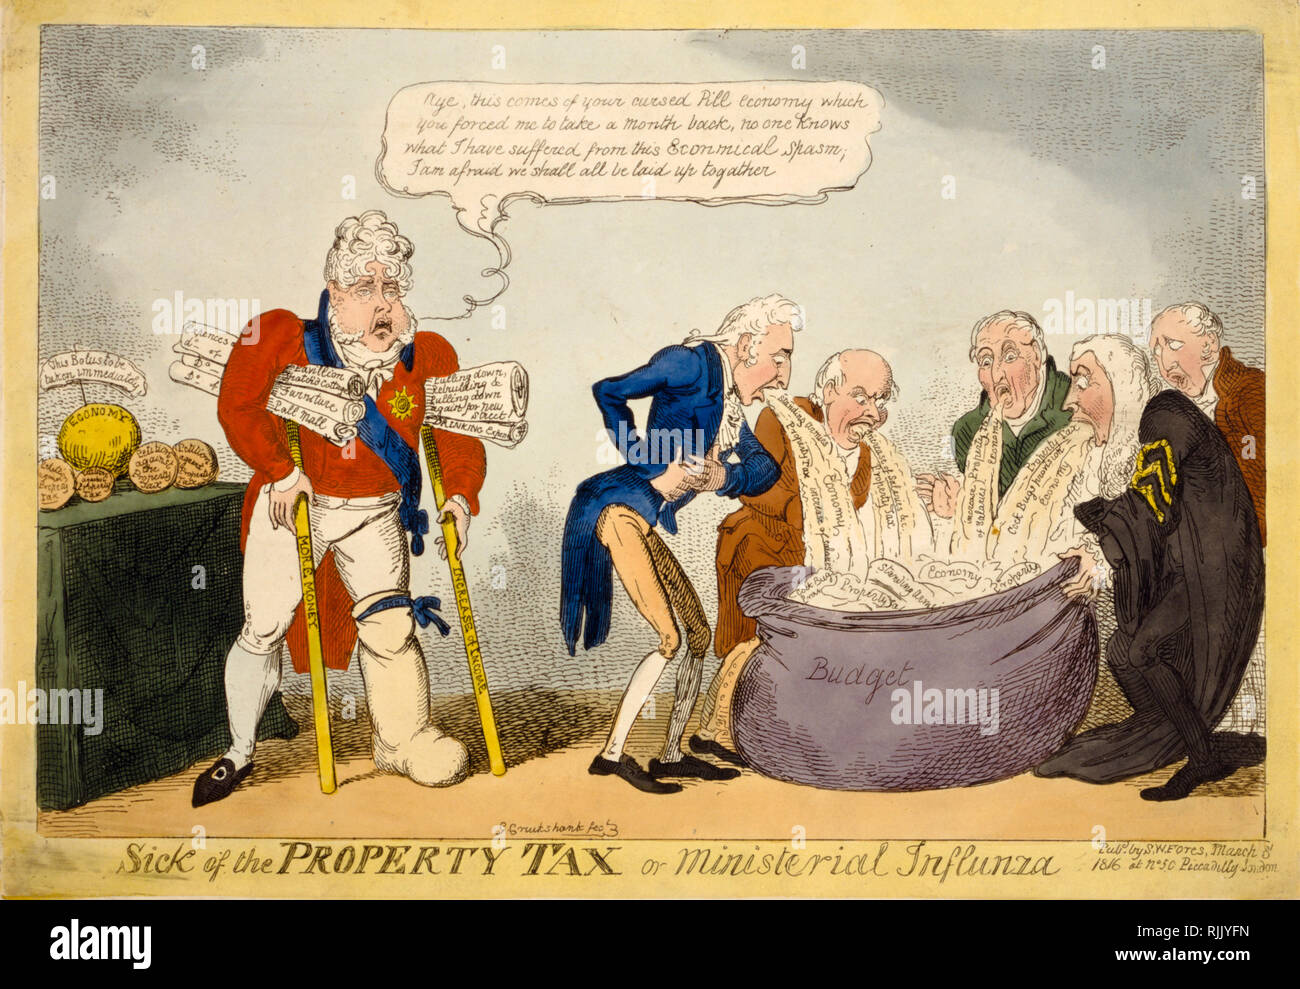 British Political Cartoon - George Cruikshank 1816 - 'Sick of the property tax or ministerial influnza (sic)' - politics - Stock Image